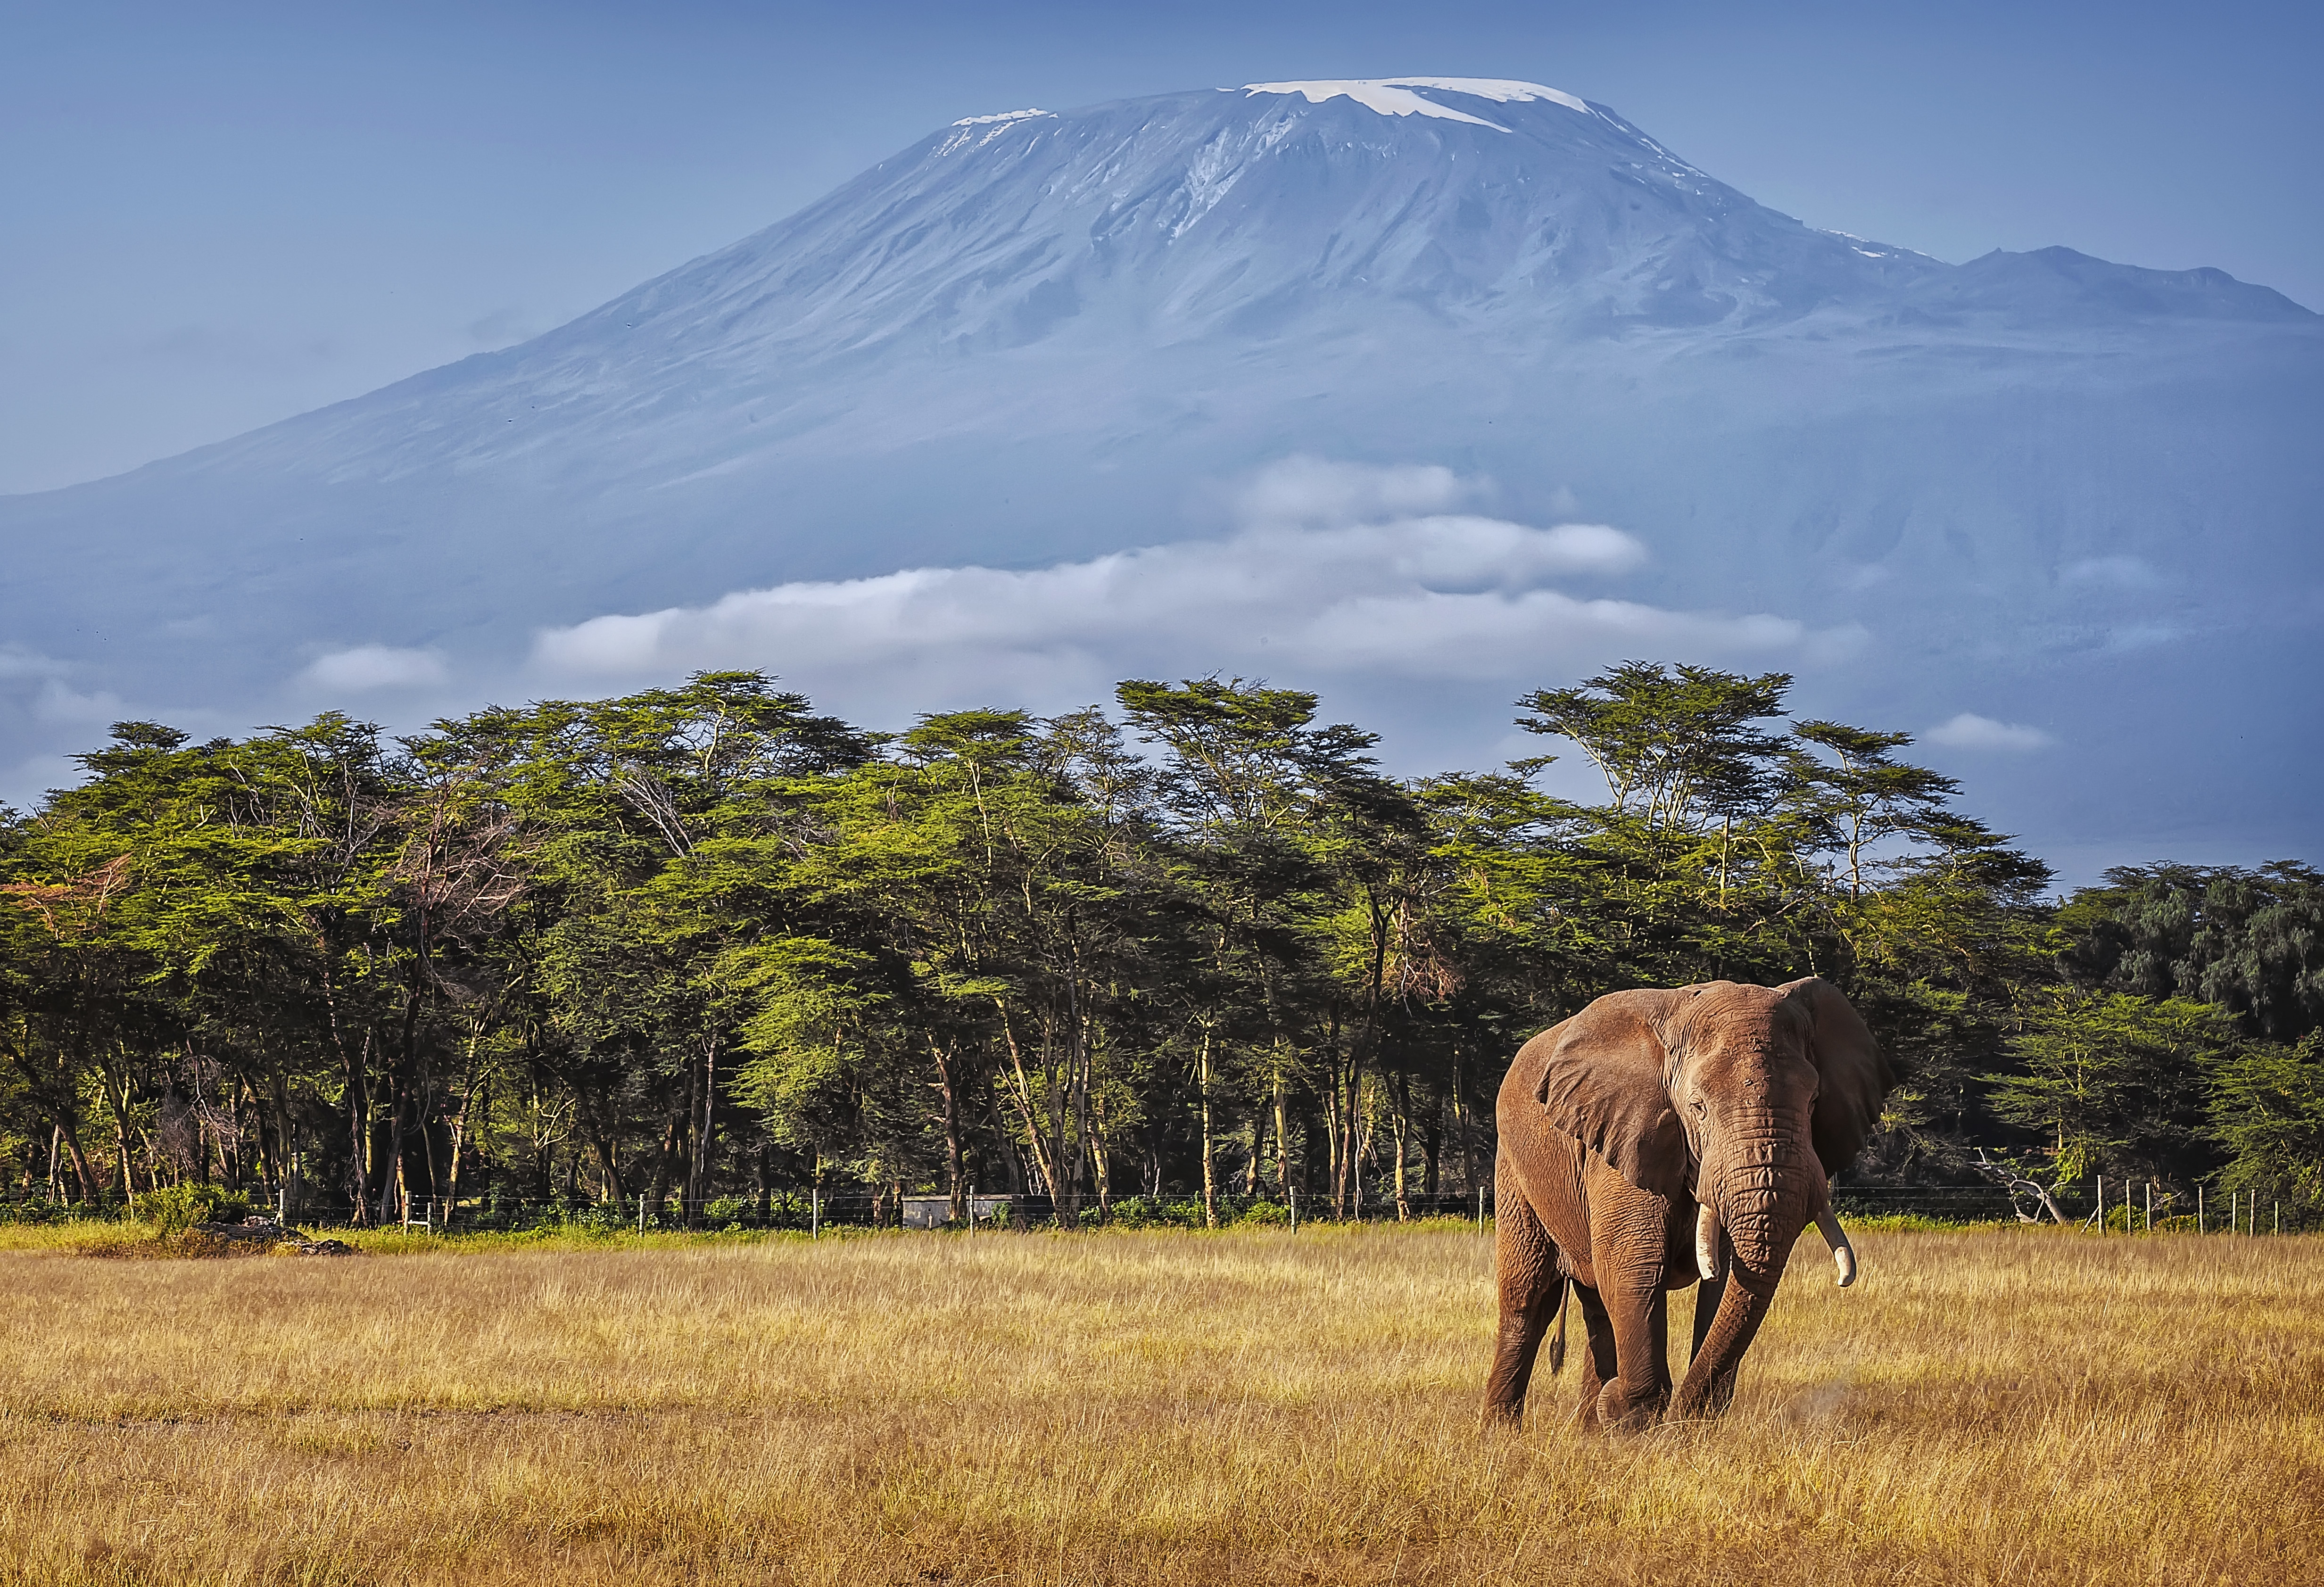 Kilimanjaro Preparation Guide: 10 Must-Haves for a Comfortable Hiking Trip